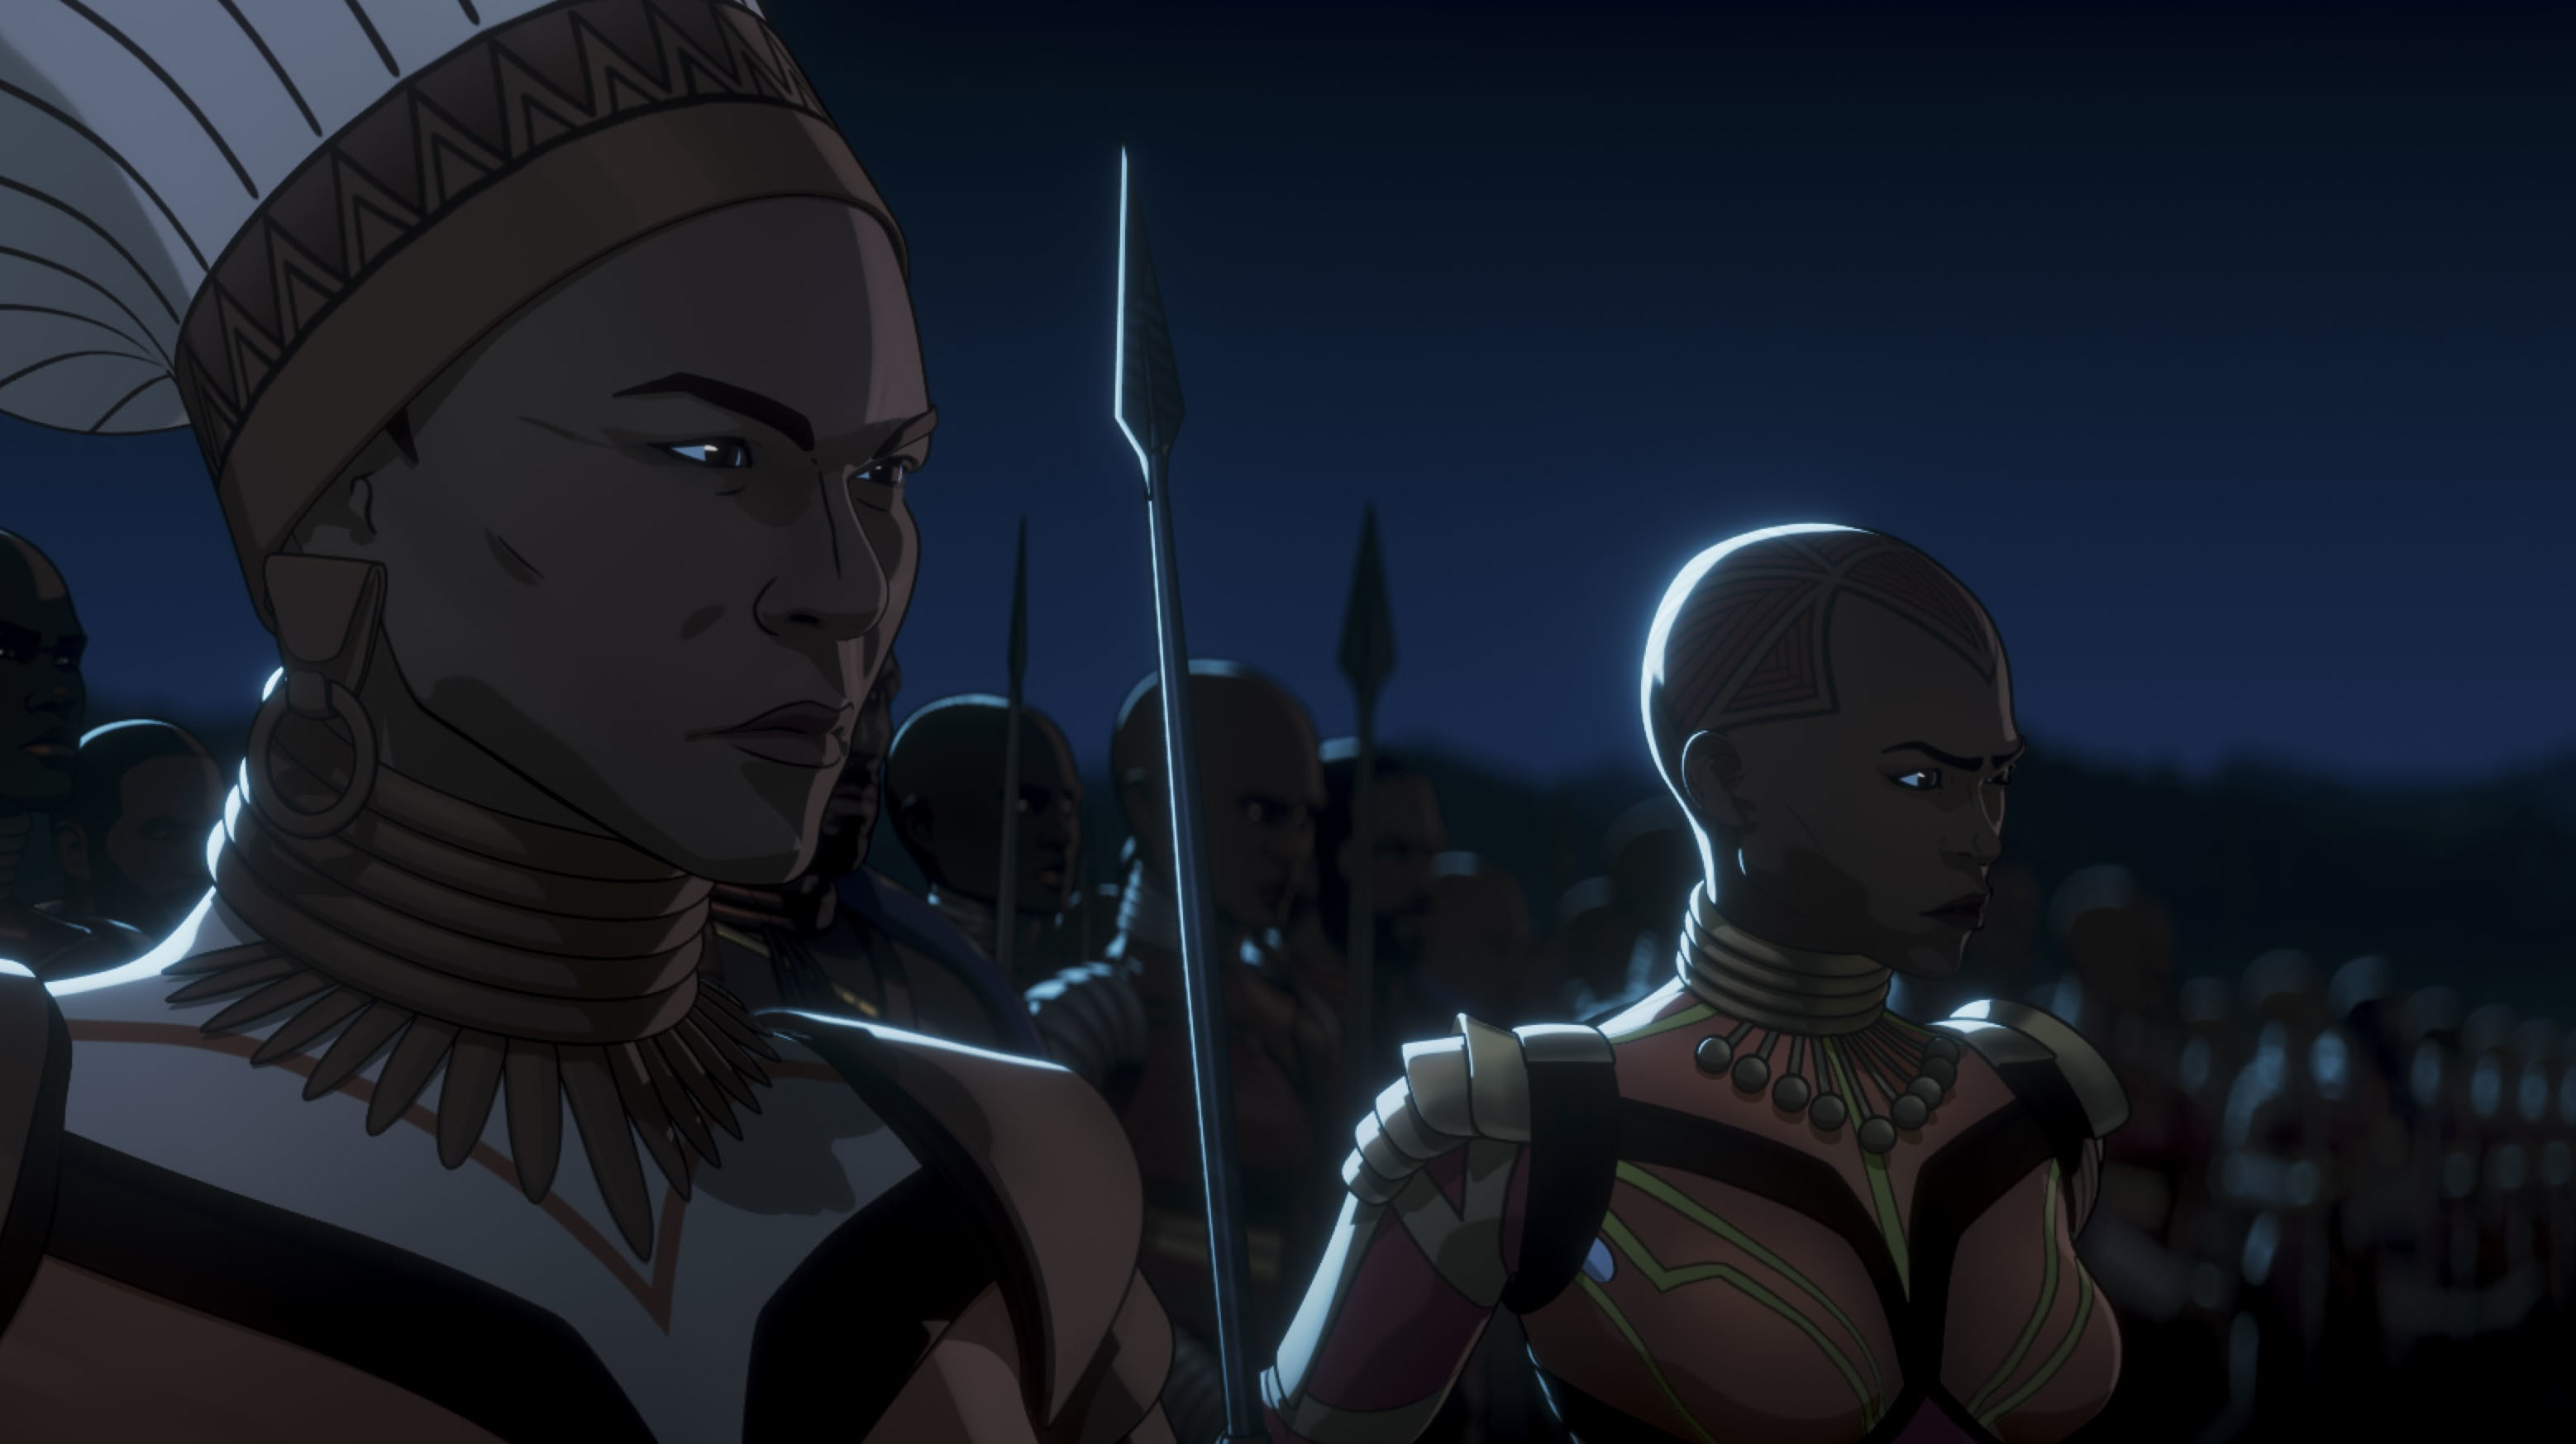 Queen General Ramonda, Okoye, and the Dora Milaje in Marvel Studios' WHAT IF…? exclusively on Disney+. ©Marvel Studios 2021. All Rights Reserved.